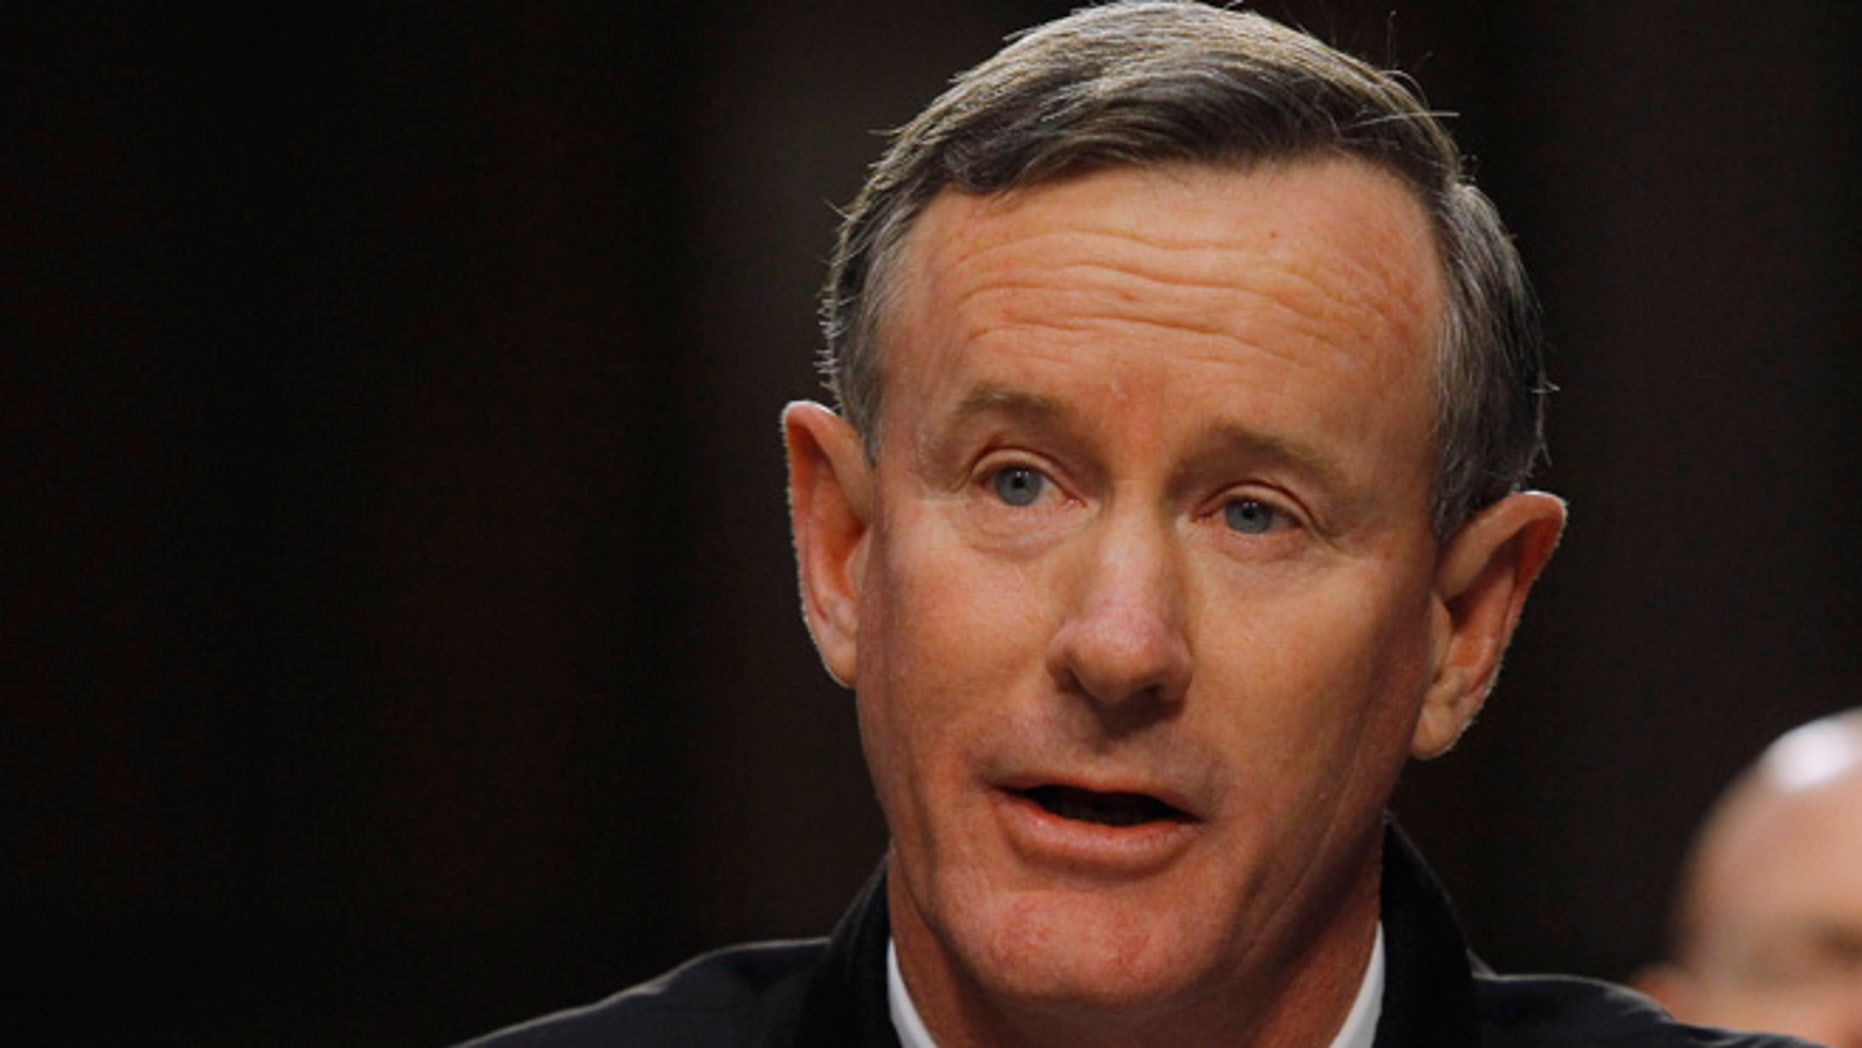 March 5, 2013: U.S. Navy Admiral William McRaven testifies before the Senate Armed Services Committee in Washington, with regard to the Defense Authorization Request for fiscal year 2014.